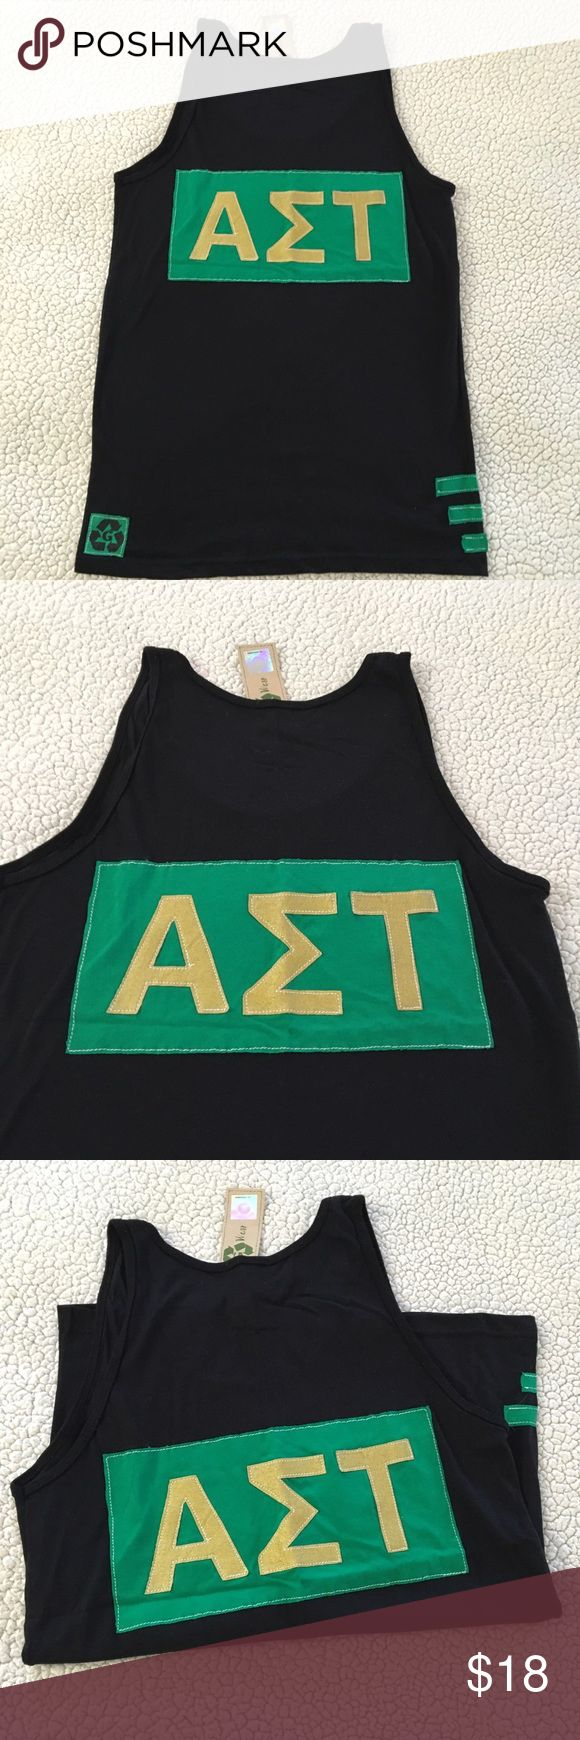 NWT Alpha Sigma Tau black & green boyfriend tank NWT Alpha Sigma Tau black & green scoop neck boyfriend tank top. Size AM. 50% polyester 25% cotton 25% rayon. Green & yellow sorority lettering symbol on back. Solid front. Made in USA. $36 retail. Rare and one of a kind. #greek #life #college #university #alpha #sigma #tau #sorority #pledge #black #green #yellow #big #little #sister #nwt #tank #new #scoop Never used. Smoke free home. Check closet for similar items & additional sororities. ❌no…